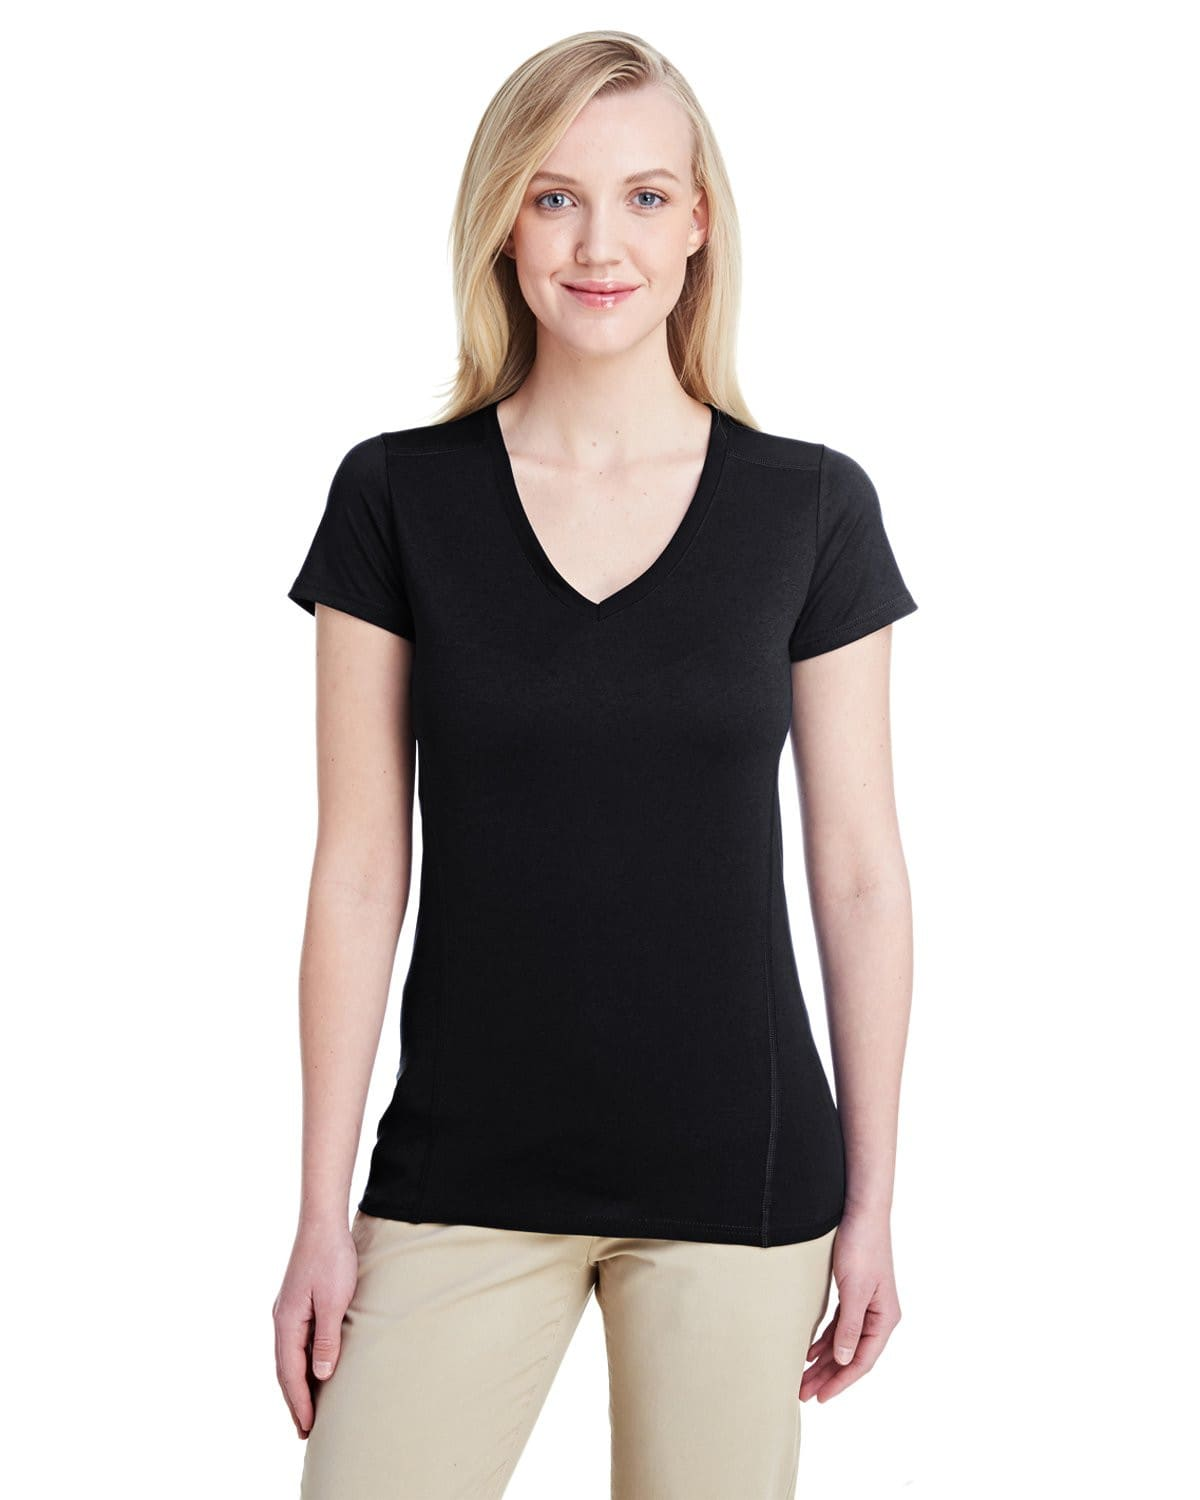 g47v-ladies-performance-ladies-4-7-oz-v-neck-tech-t-shirt-XSmall-BLACK-Oasispromos